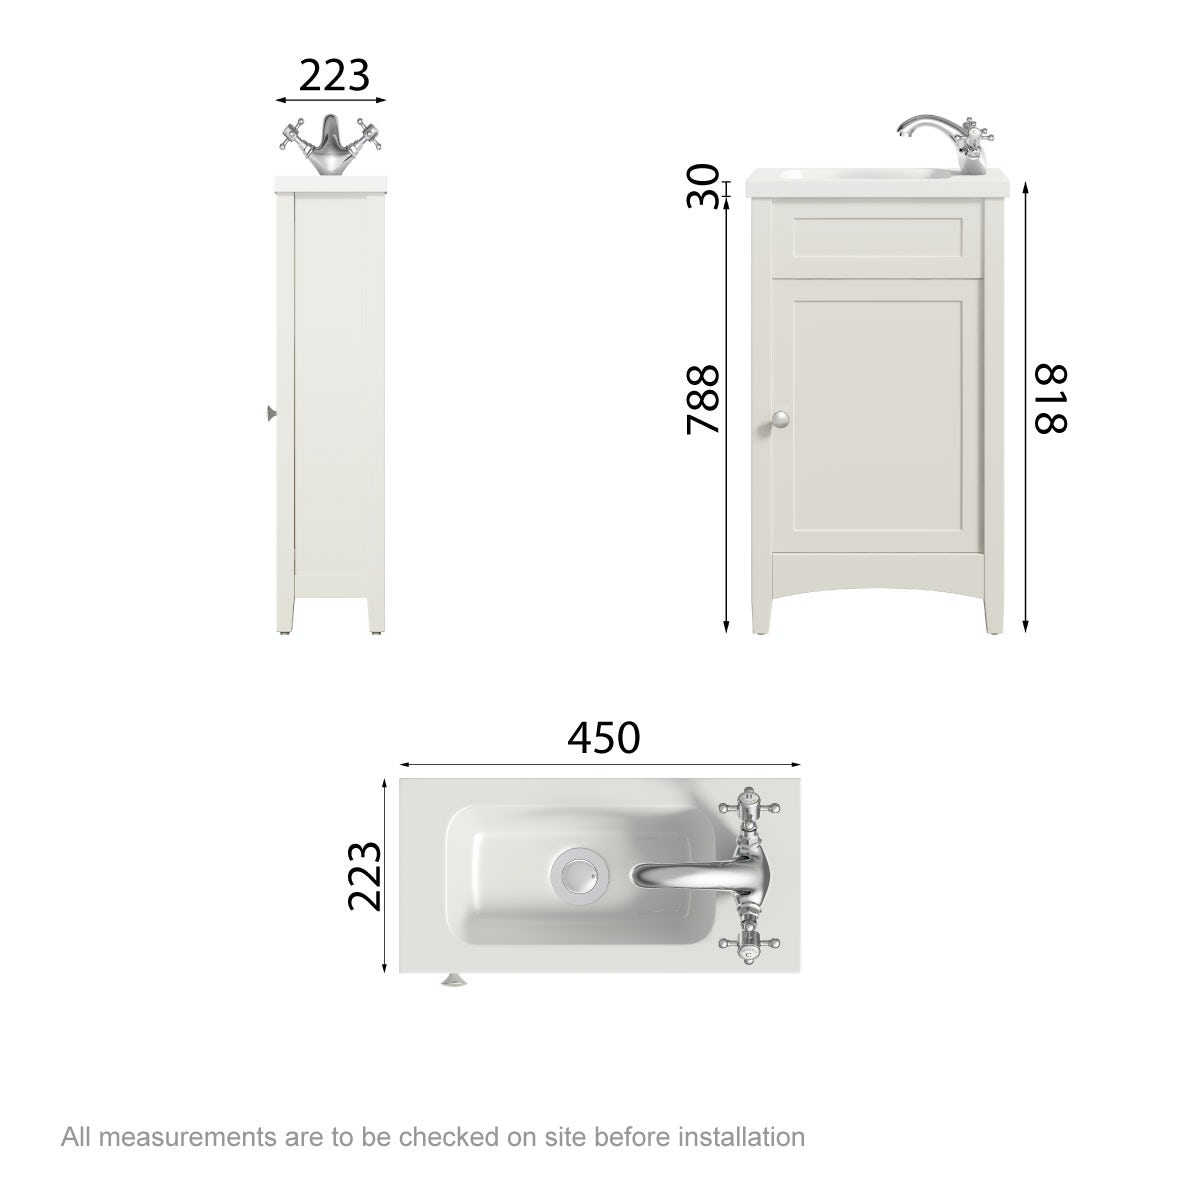 Dimensions for The Bath Co. Camberley satin ivory cloakroom vanity with basin 450mm